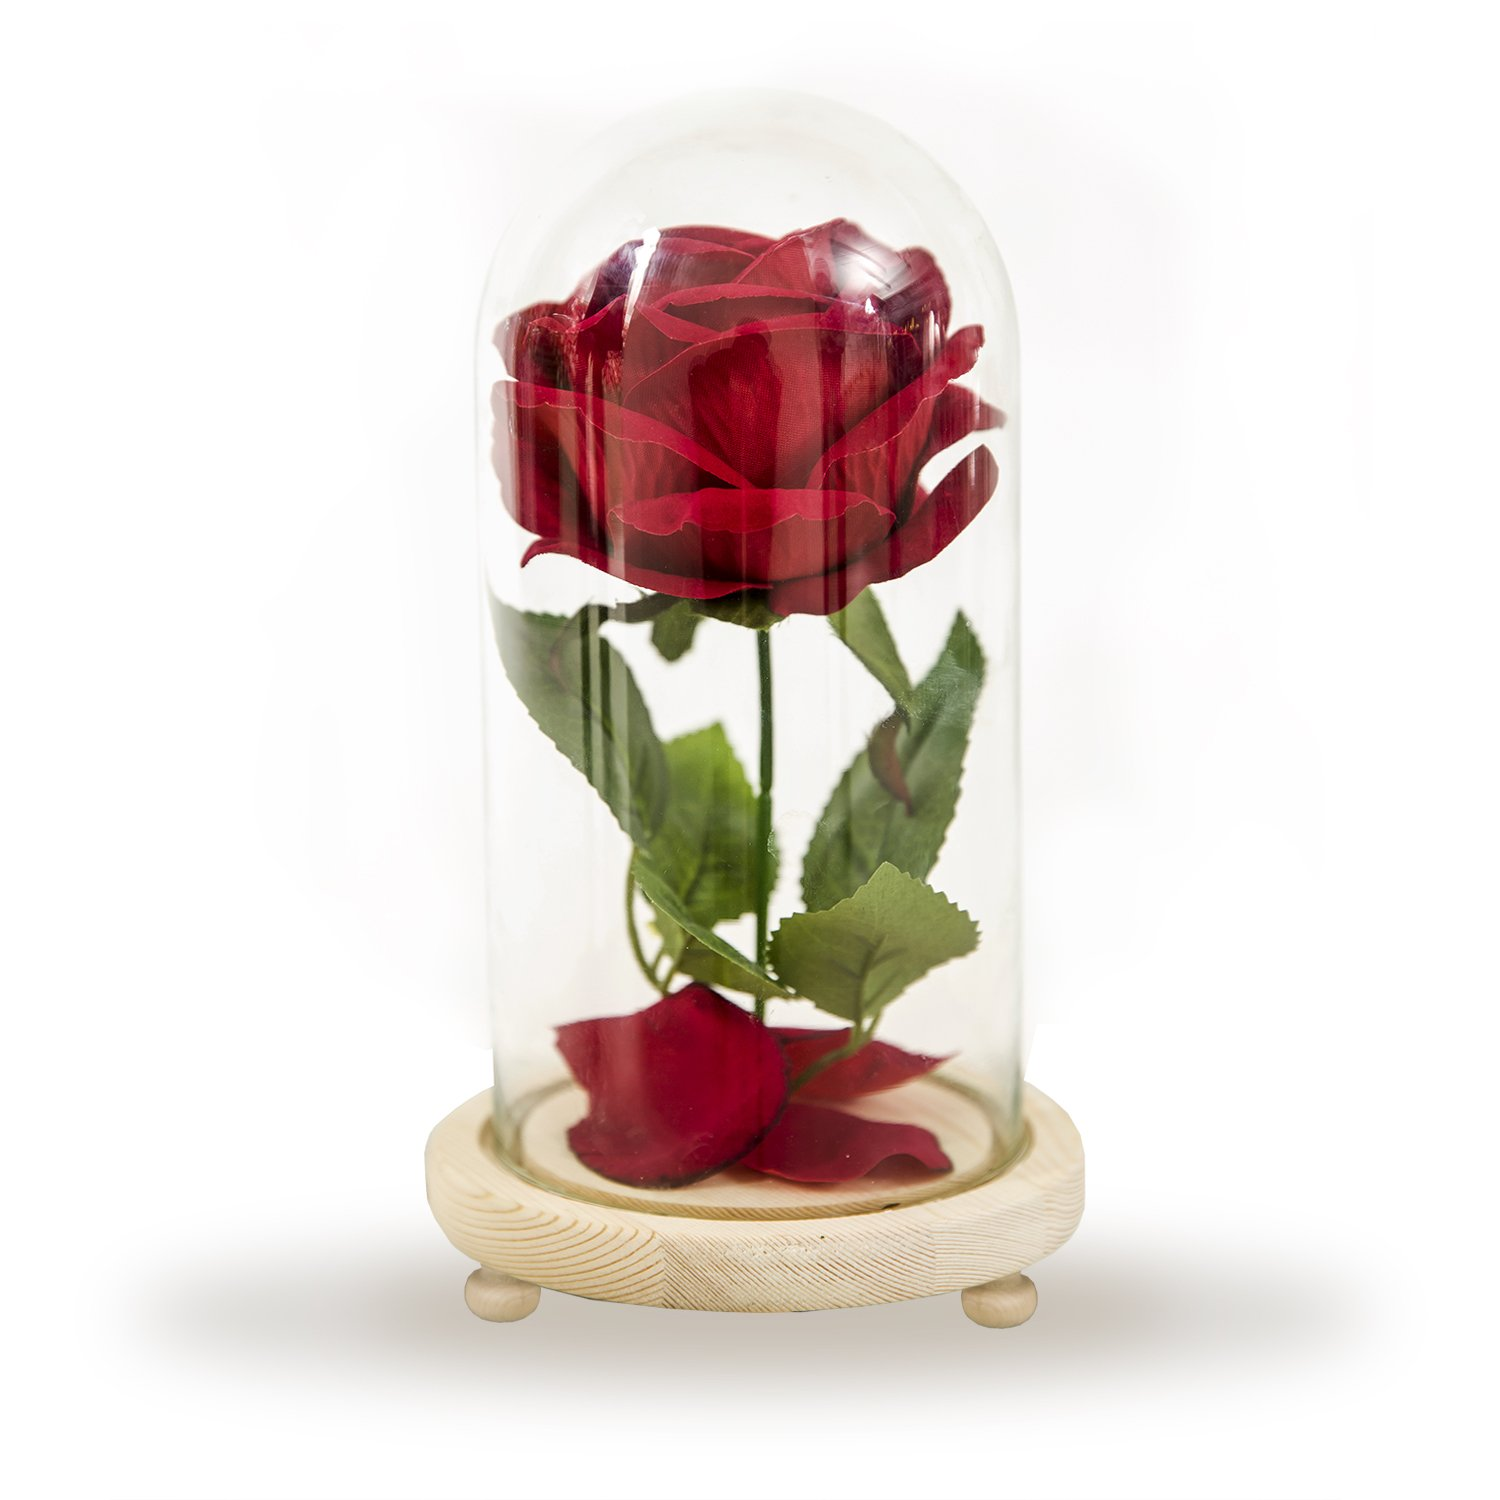 Jiabng Red Velvet Rose Colorful Night Light in Glass Dome - Romantic Gift for Her   Movie Theme Party Wedding Decoration